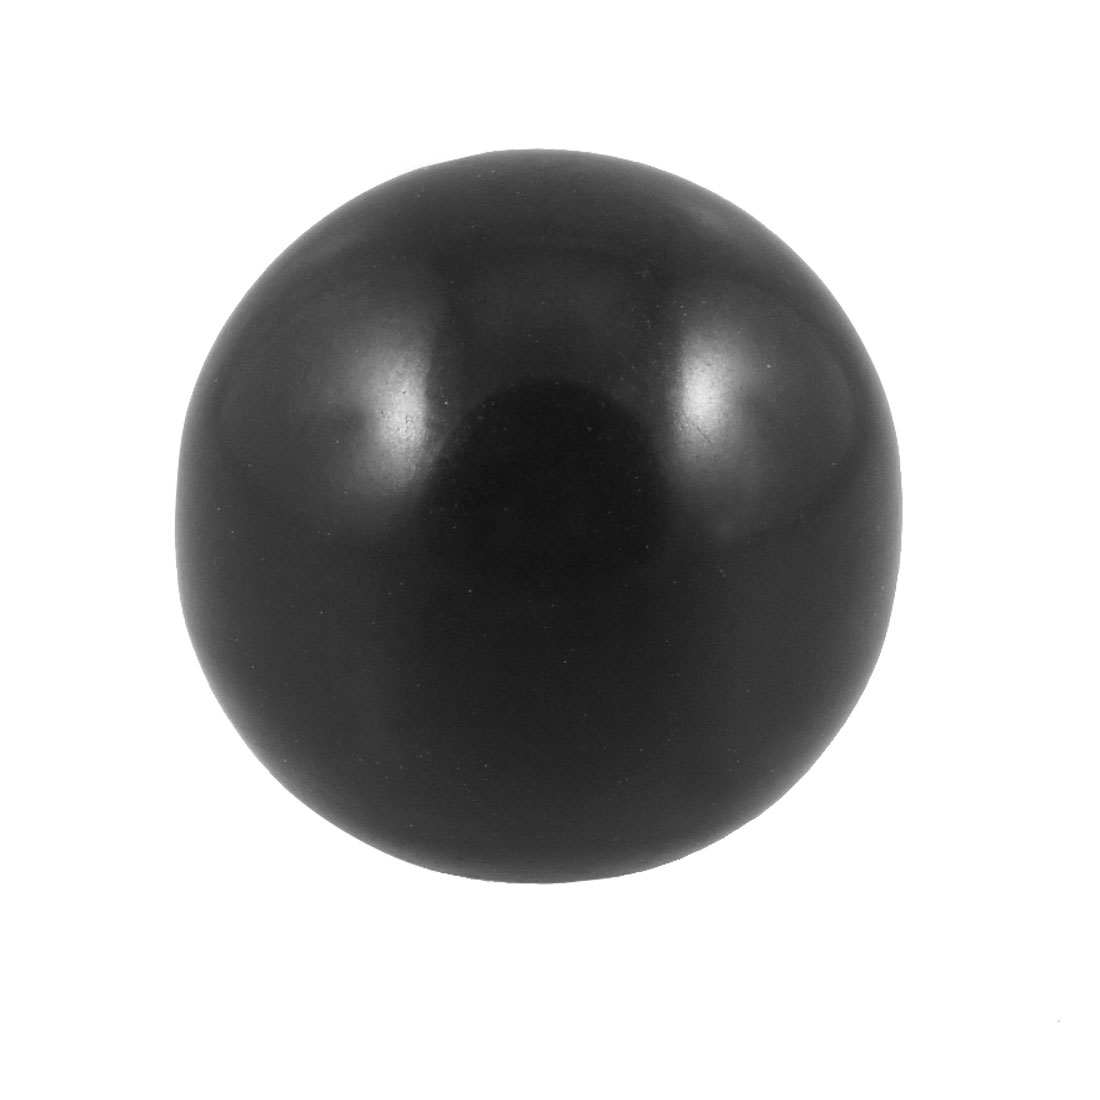 Machine Tool 6mm Threaded 25mm Diameter Tapped Handling Ball Knob Black